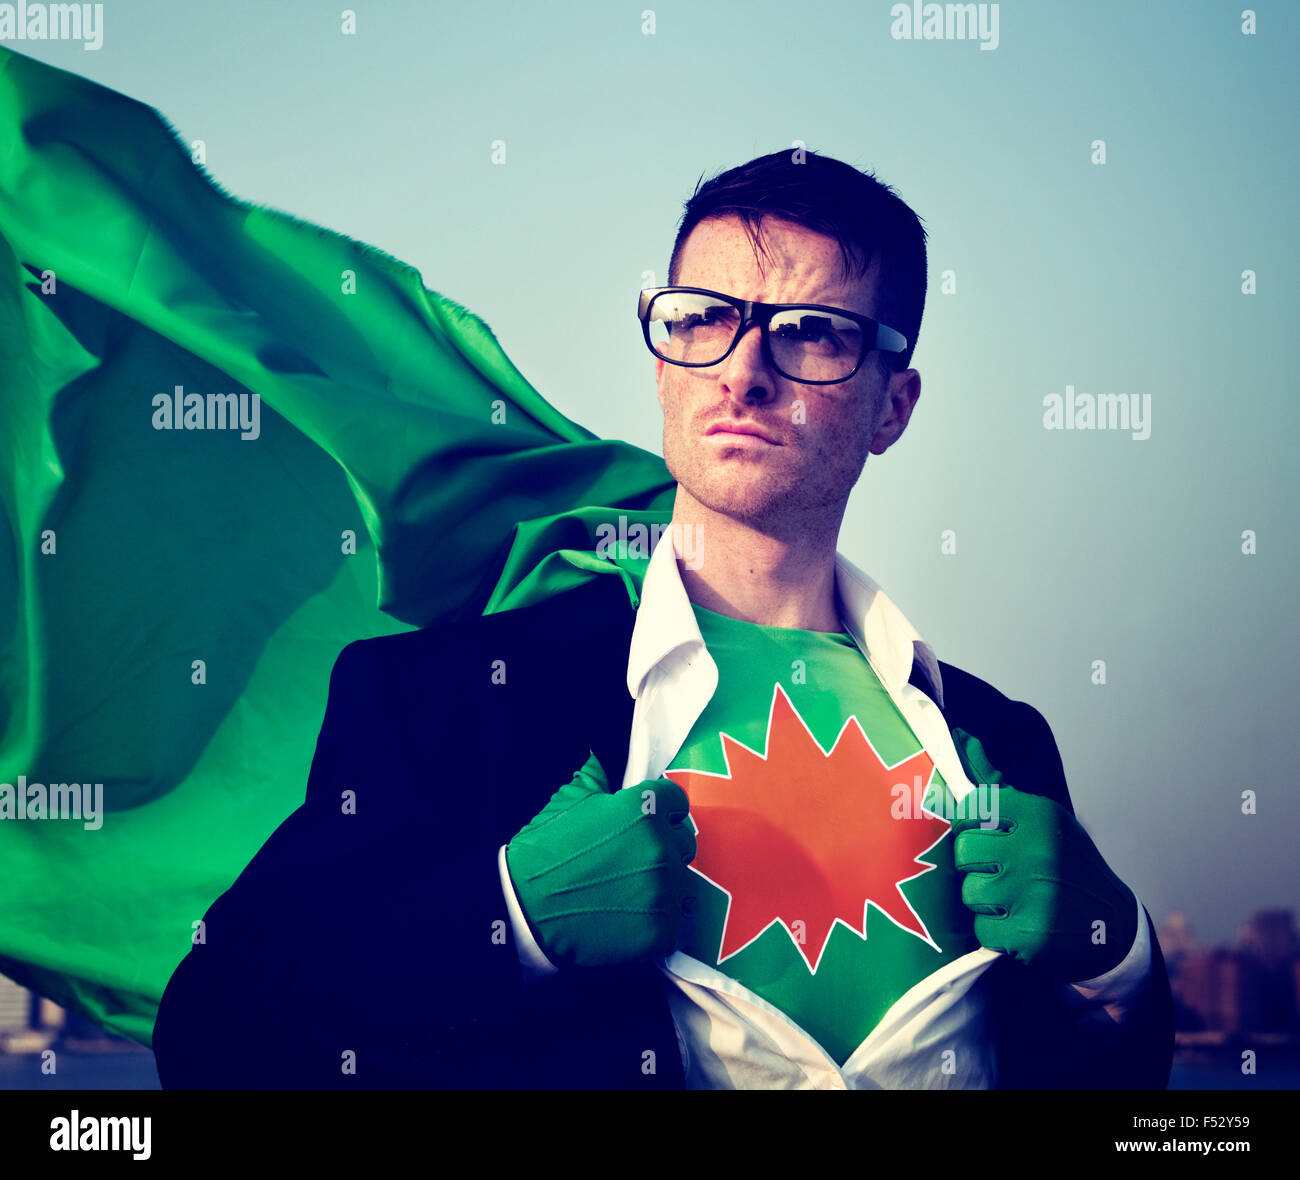 Kaboom Strong Superhero Success Professional Empowerment Stock Concept - Stock Image